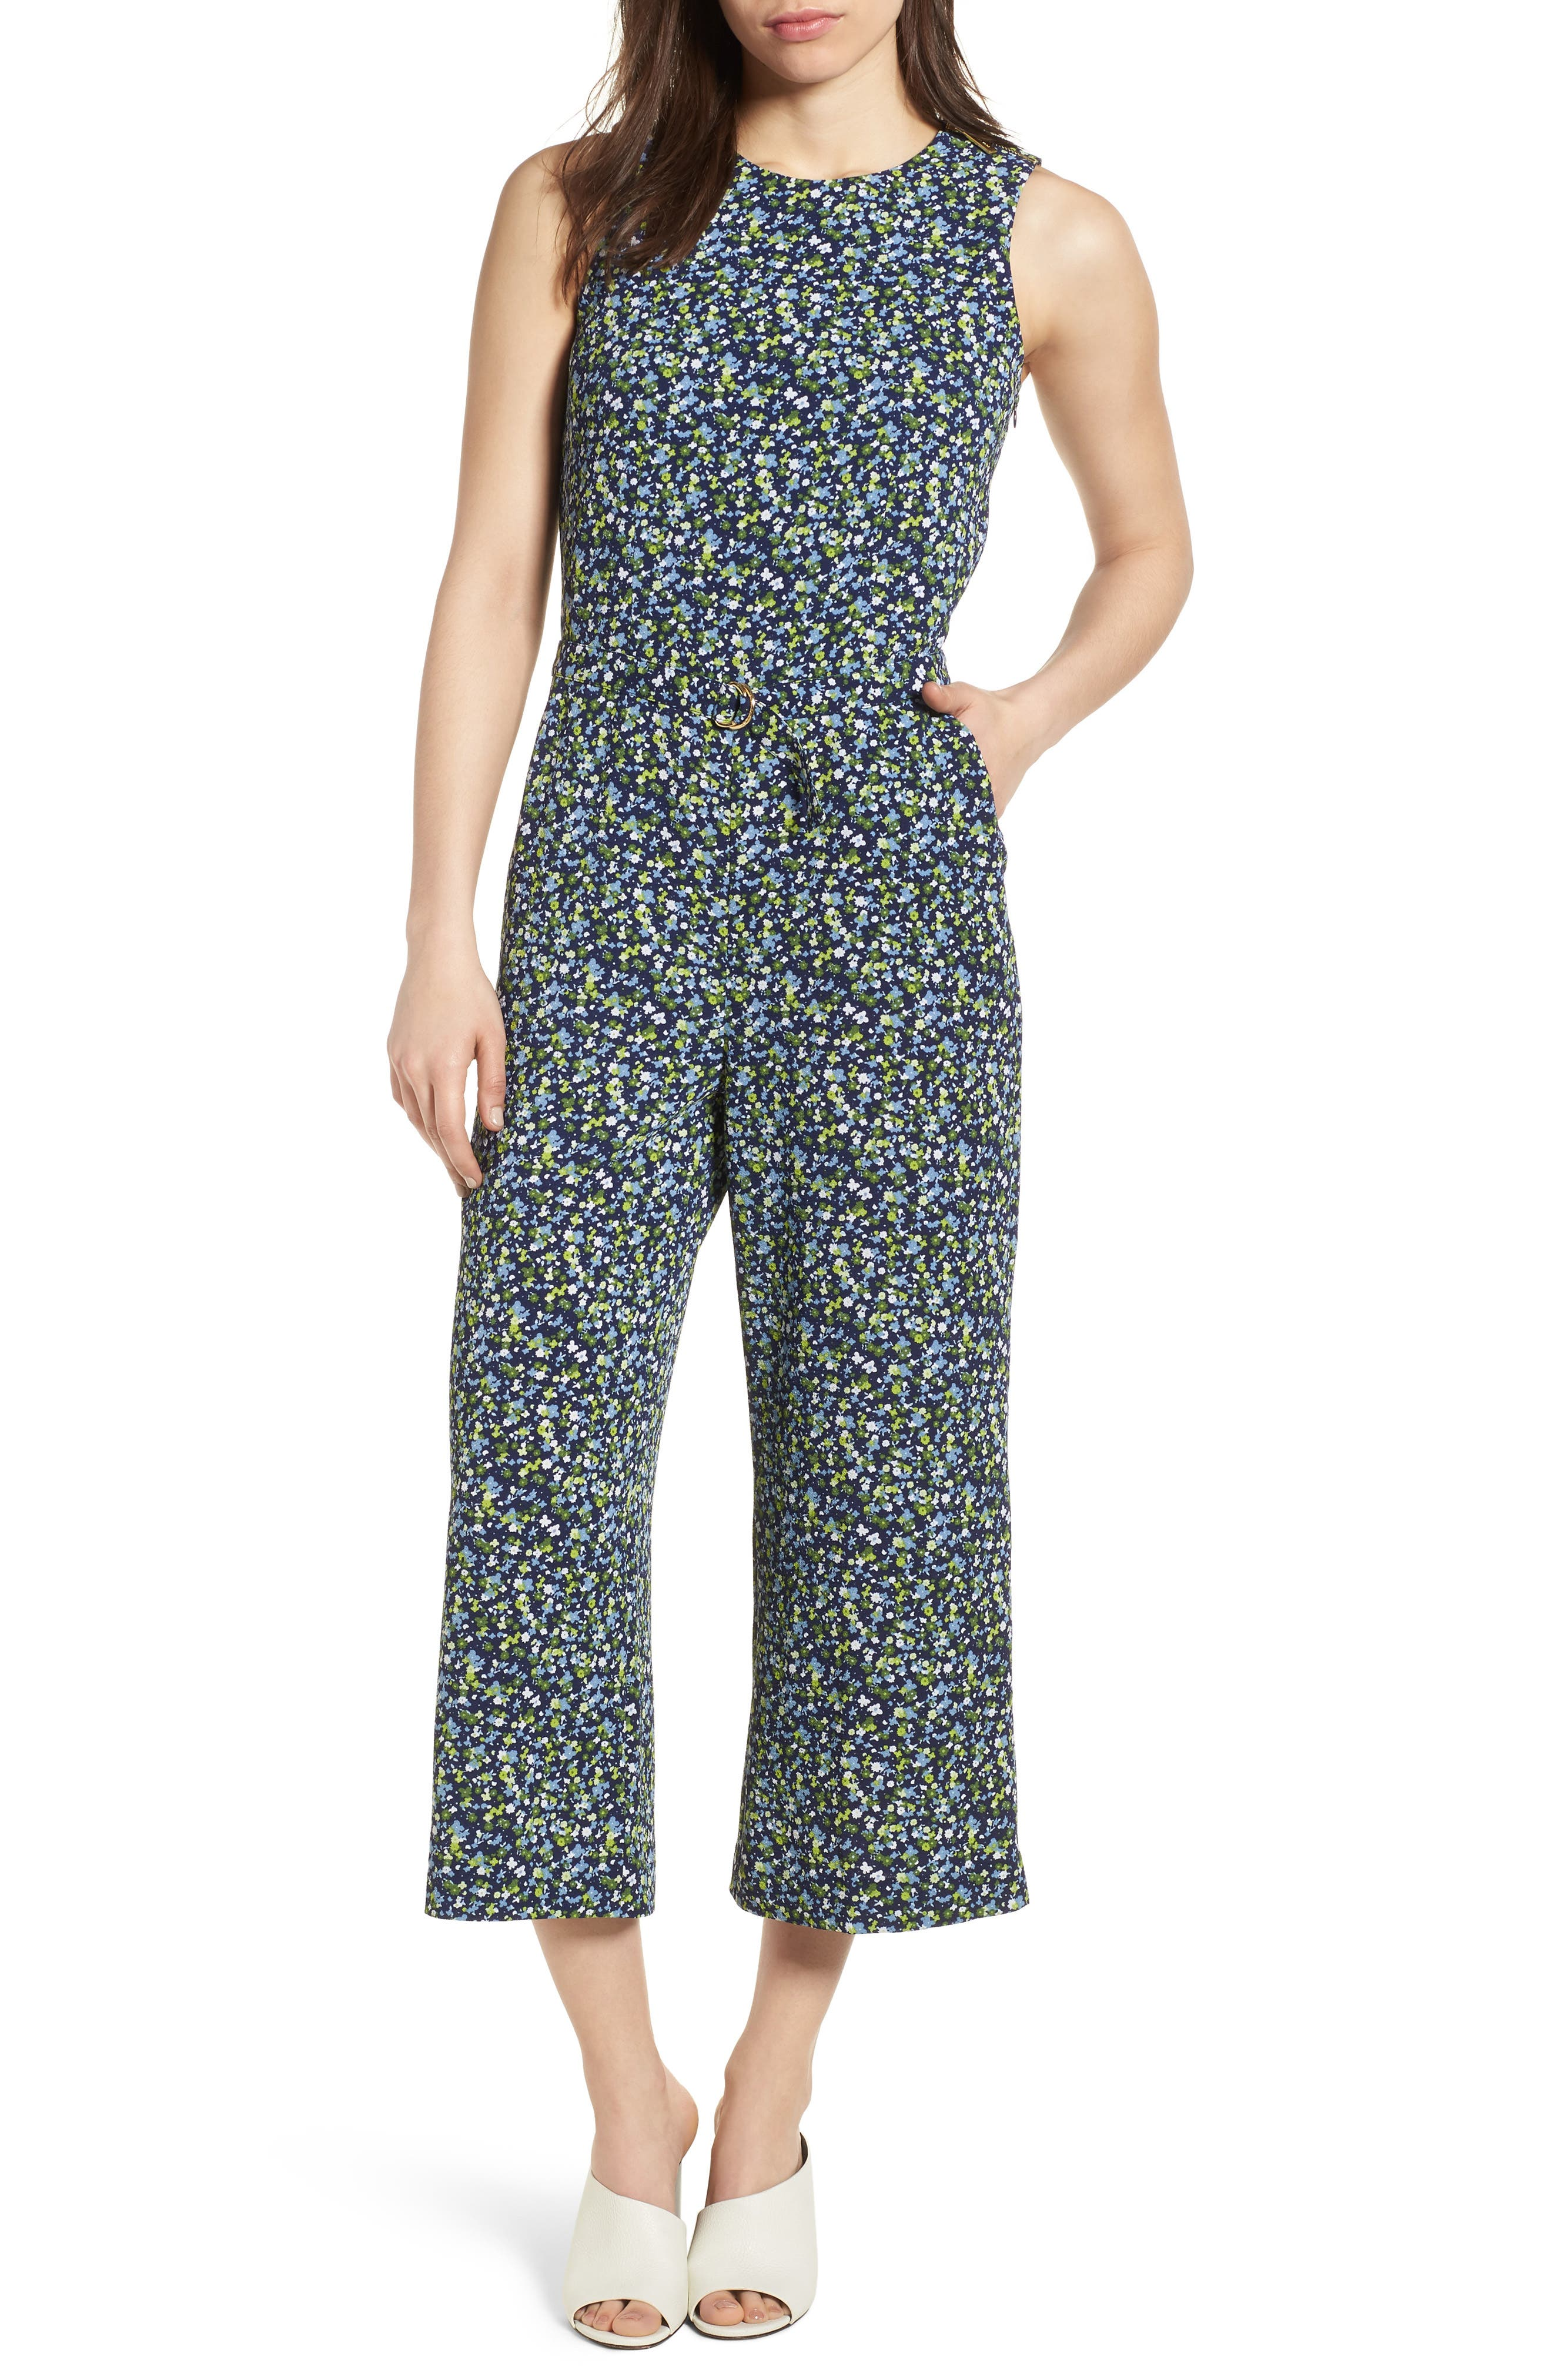 Wildflower Print Jumpsuit,                             Main thumbnail 1, color,                             True Navy/ Green Apple